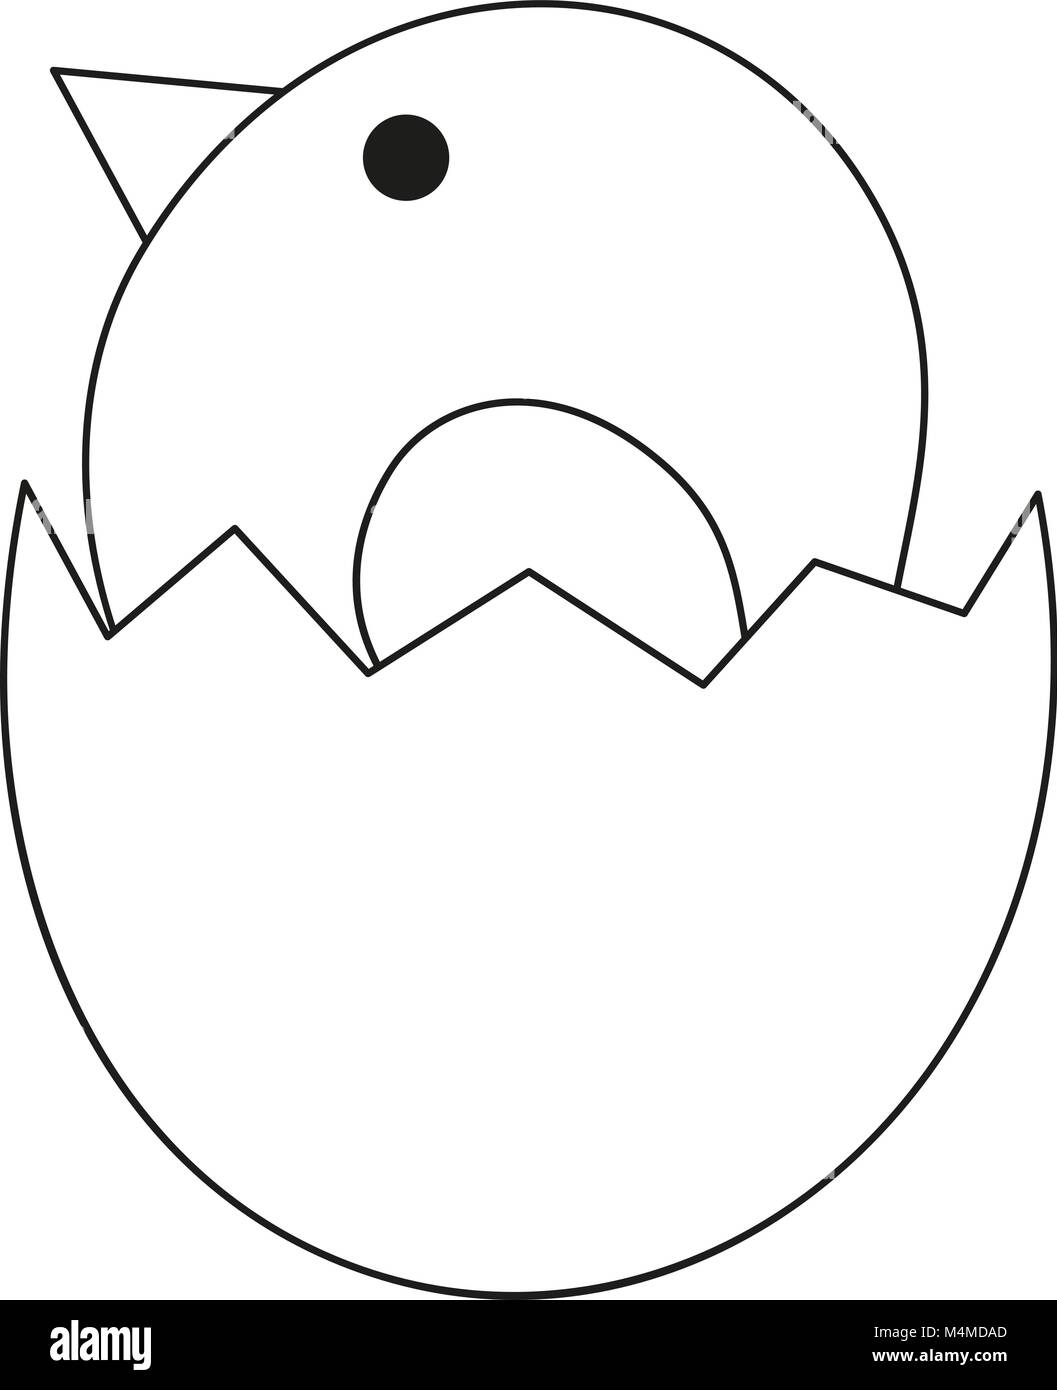 Line art black and white new born chicken chick icon poster. - Stock Image